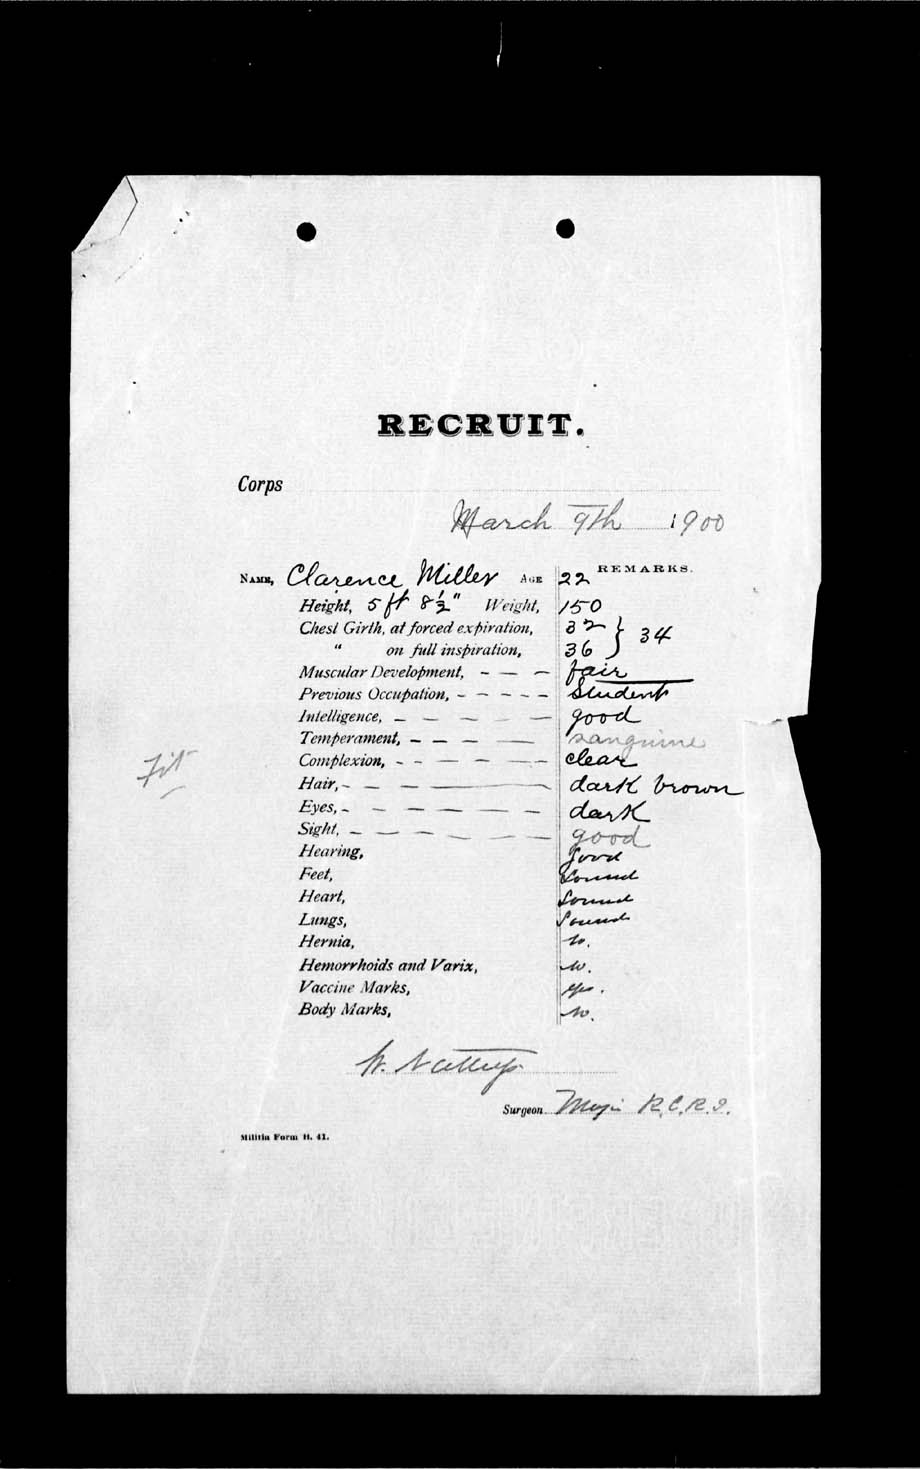 Digitized page of Boer War for Image No.: e002185937